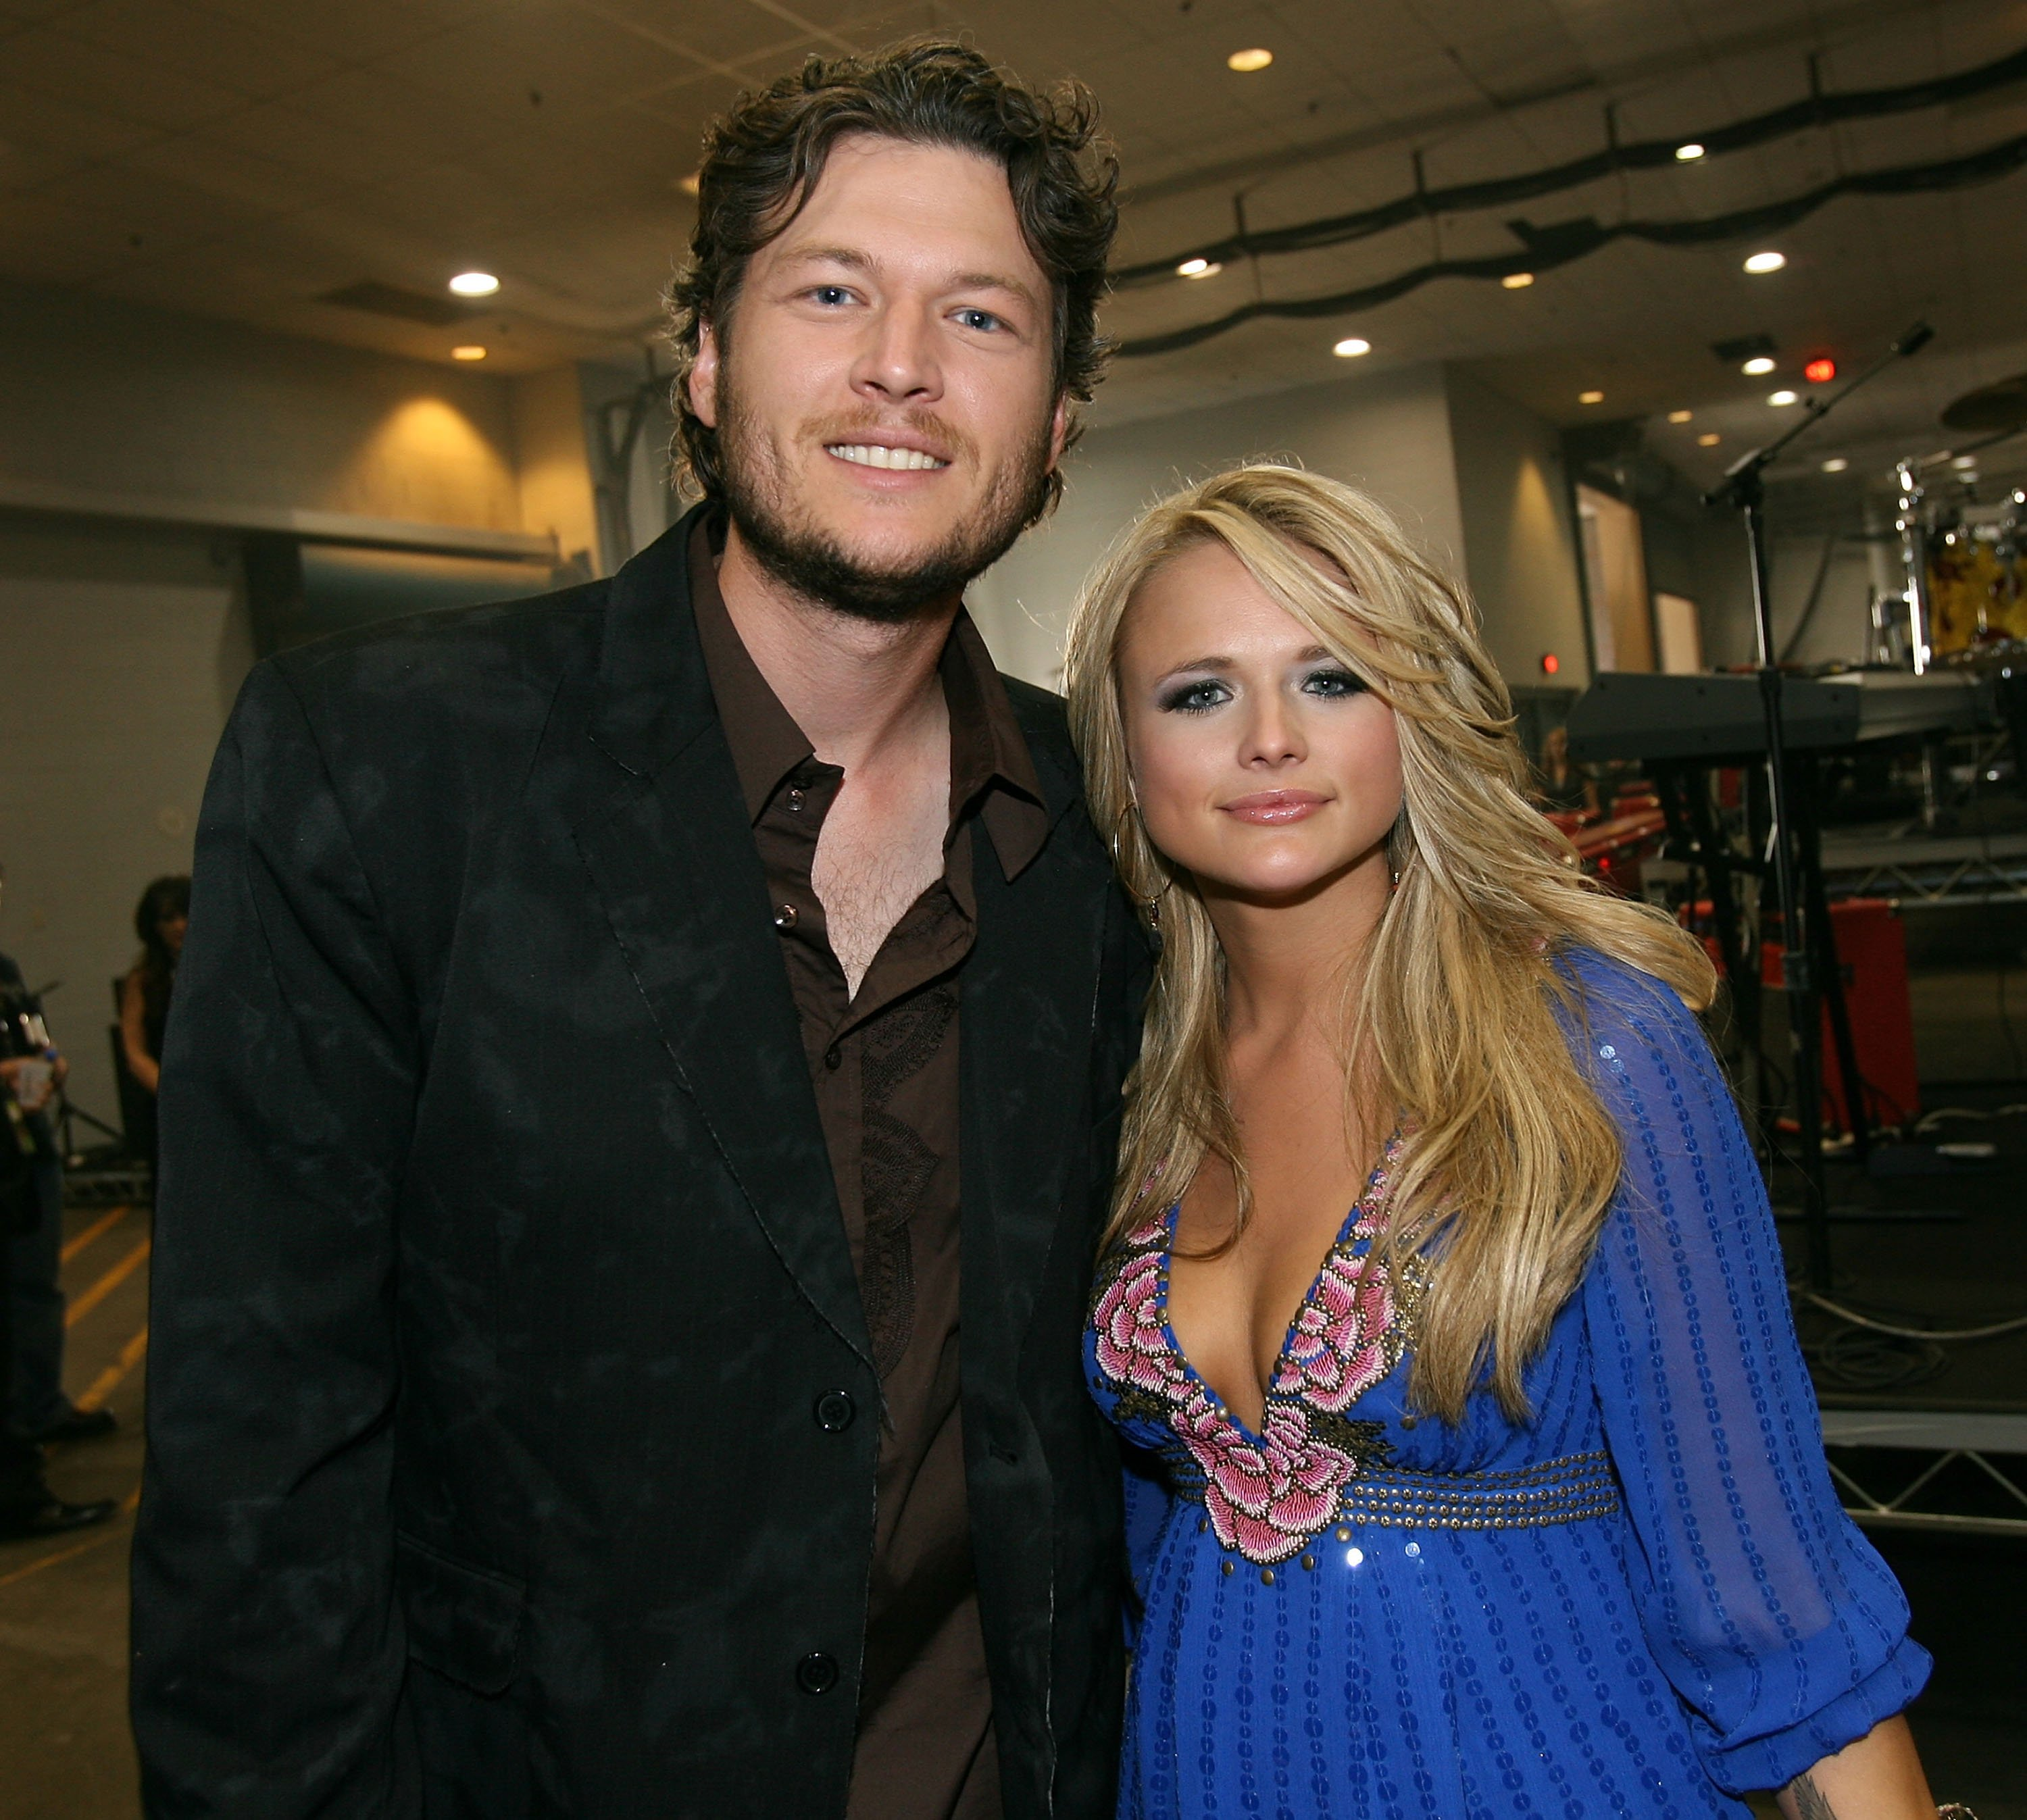 Blake Shelton and Miranda Lambert pose backstage at the 42nd Annual Academy Of Country Music Awards held at the MGM Grand Garden Arena on May 15, 2007 | Photo: GettyImages